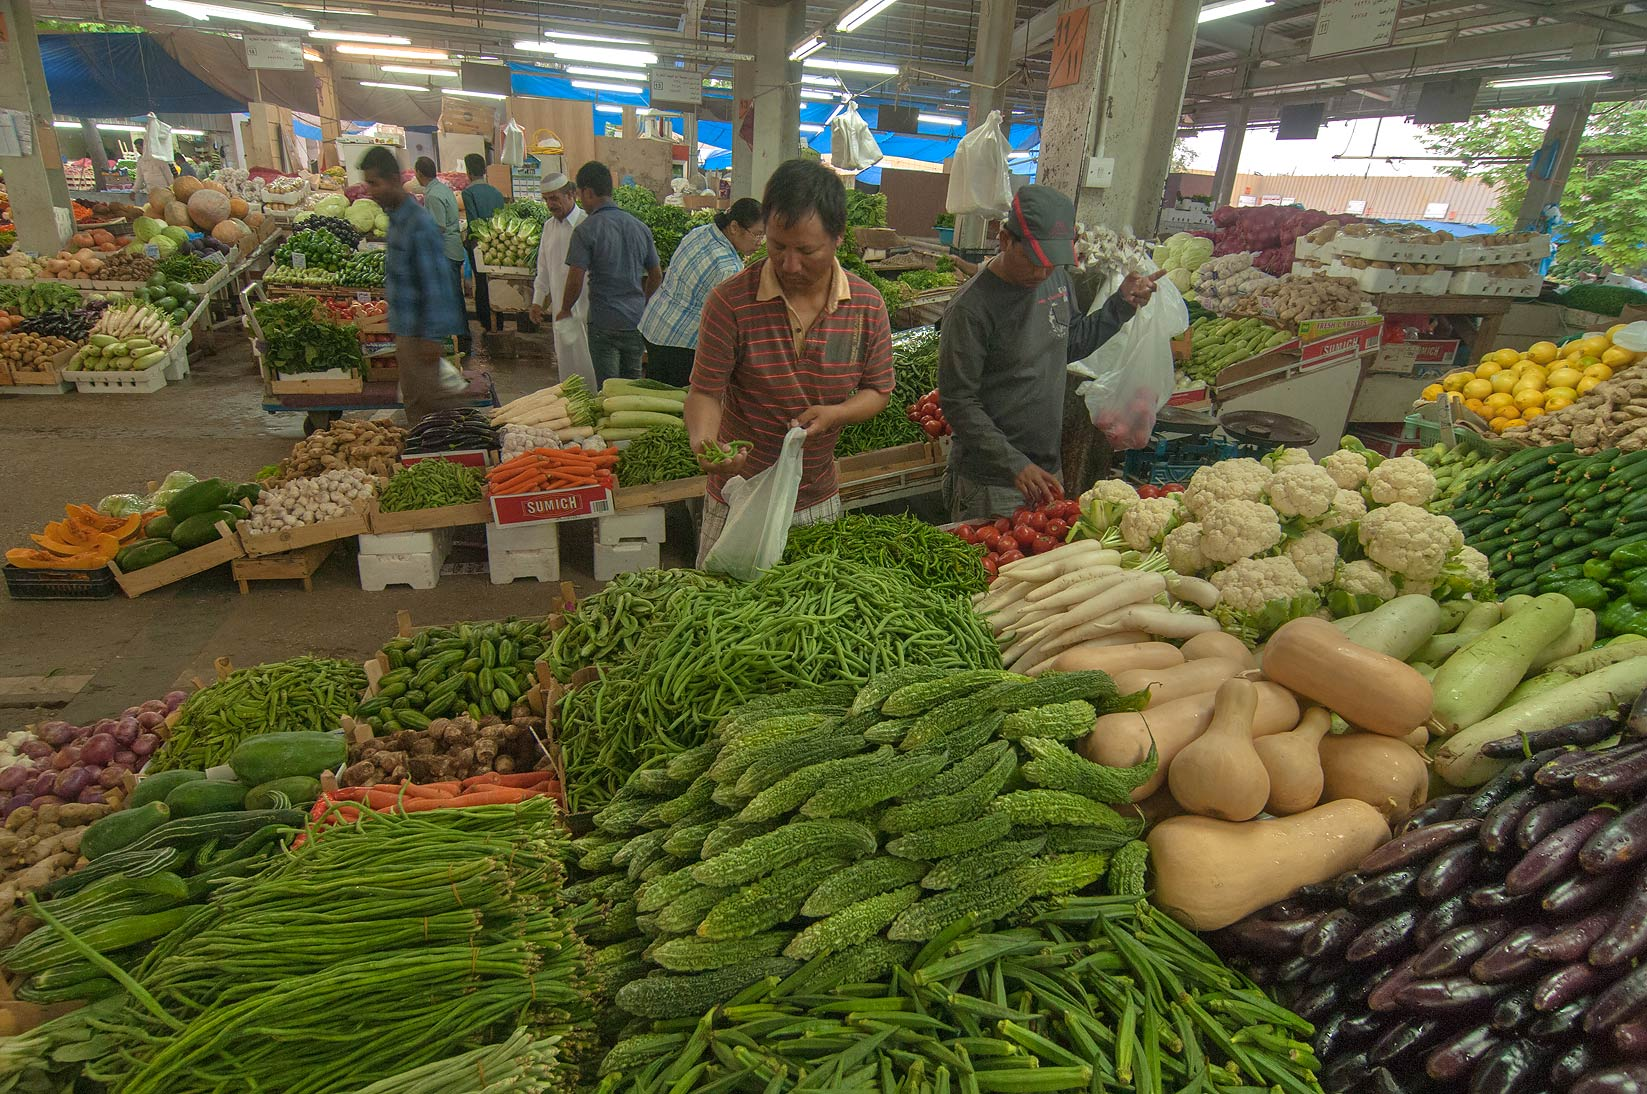 Vegetable Market, Wholesale Markets area in Abu Hamour. Doha, Qatar